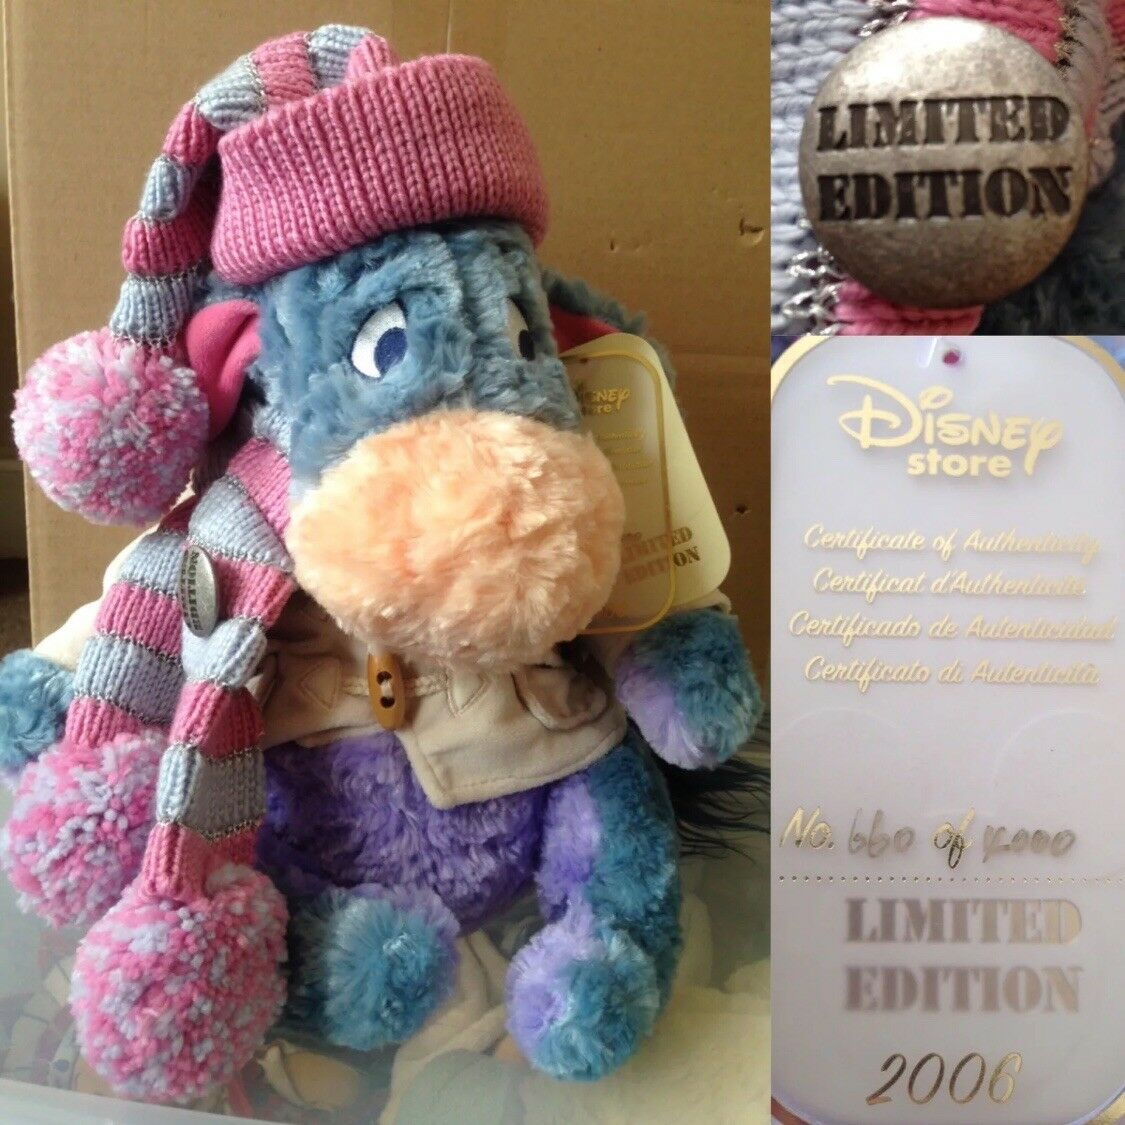 Limited Limited Limited Edition Winnie The Pooh Bundle 17179e